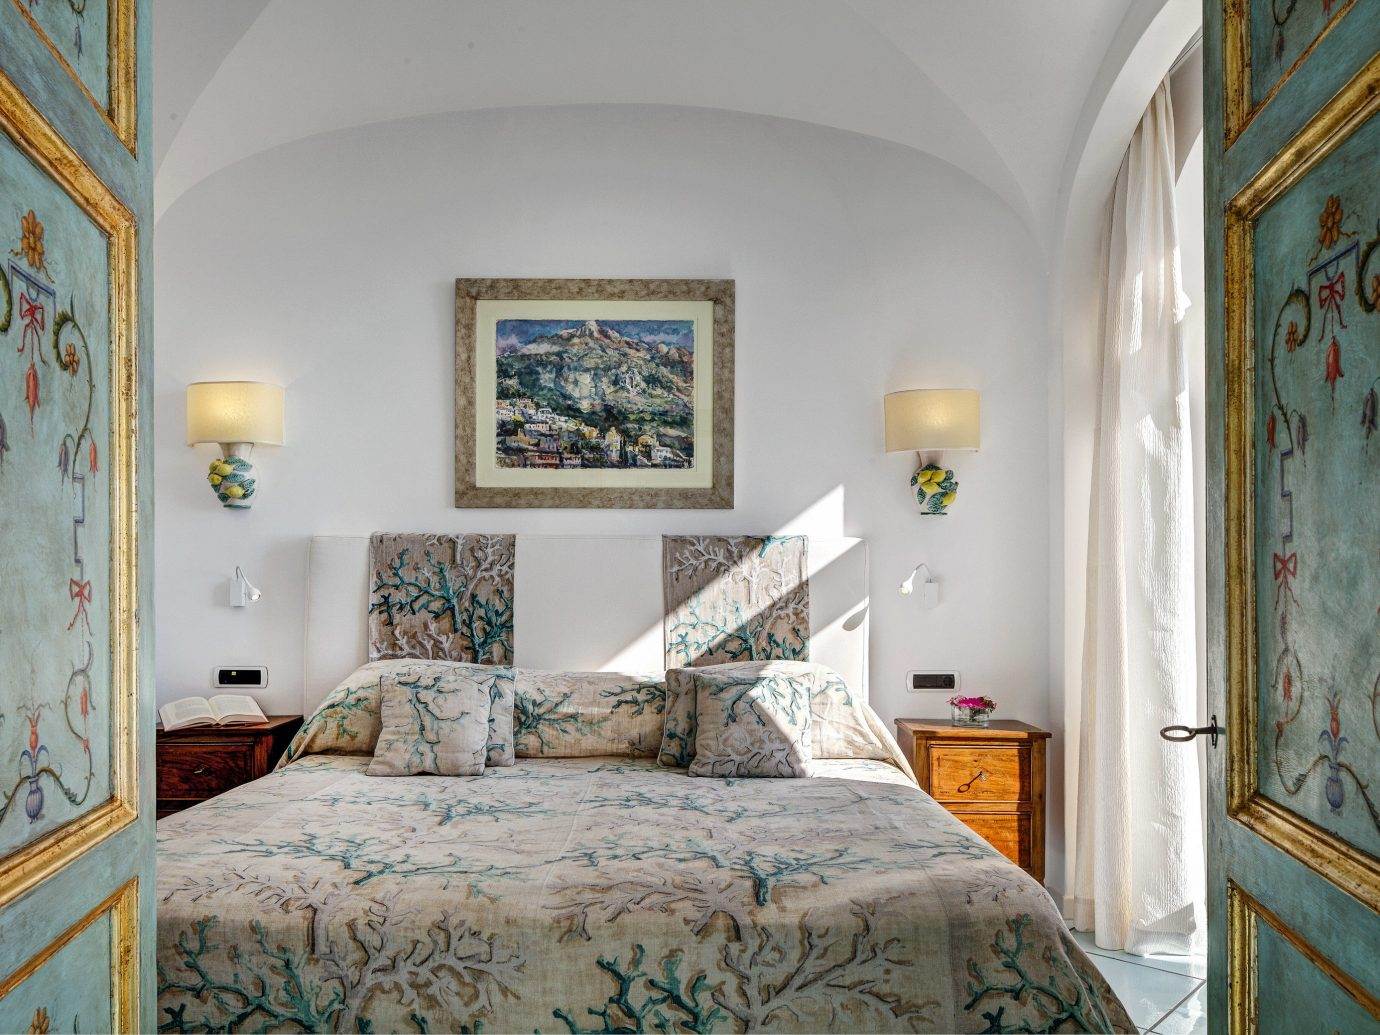 Hotels Romance bed indoor wall Bedroom room ceiling property home interior design scene Architecture estate Suite real estate window house pillow interior designer decorated painting